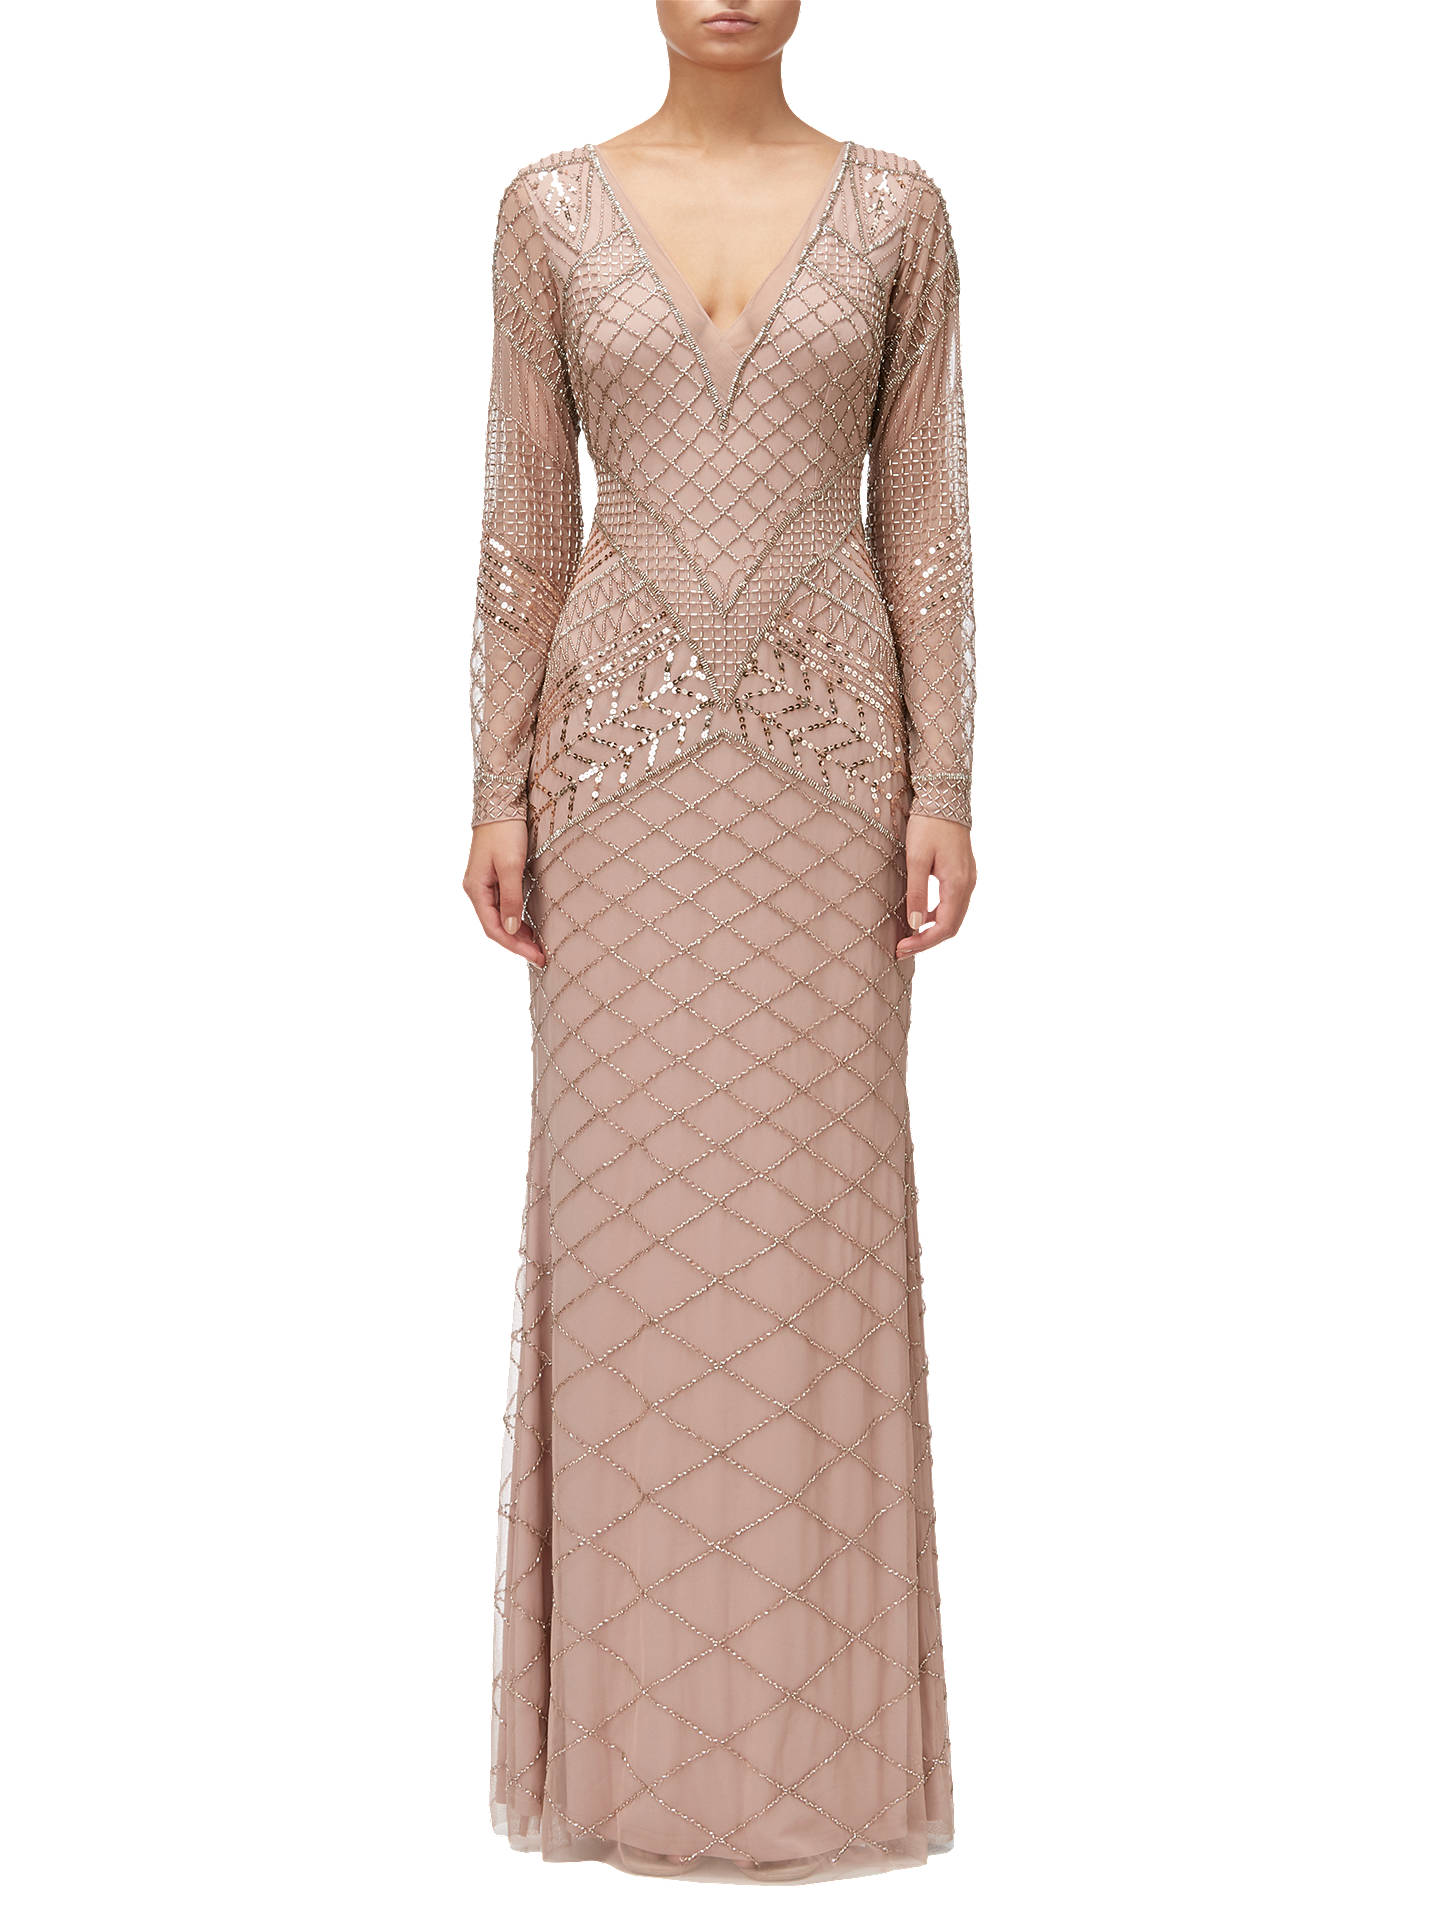 BuyAdrianna Papell Beaded Long Dress, Rose Gold, 6 Online at johnlewis.com